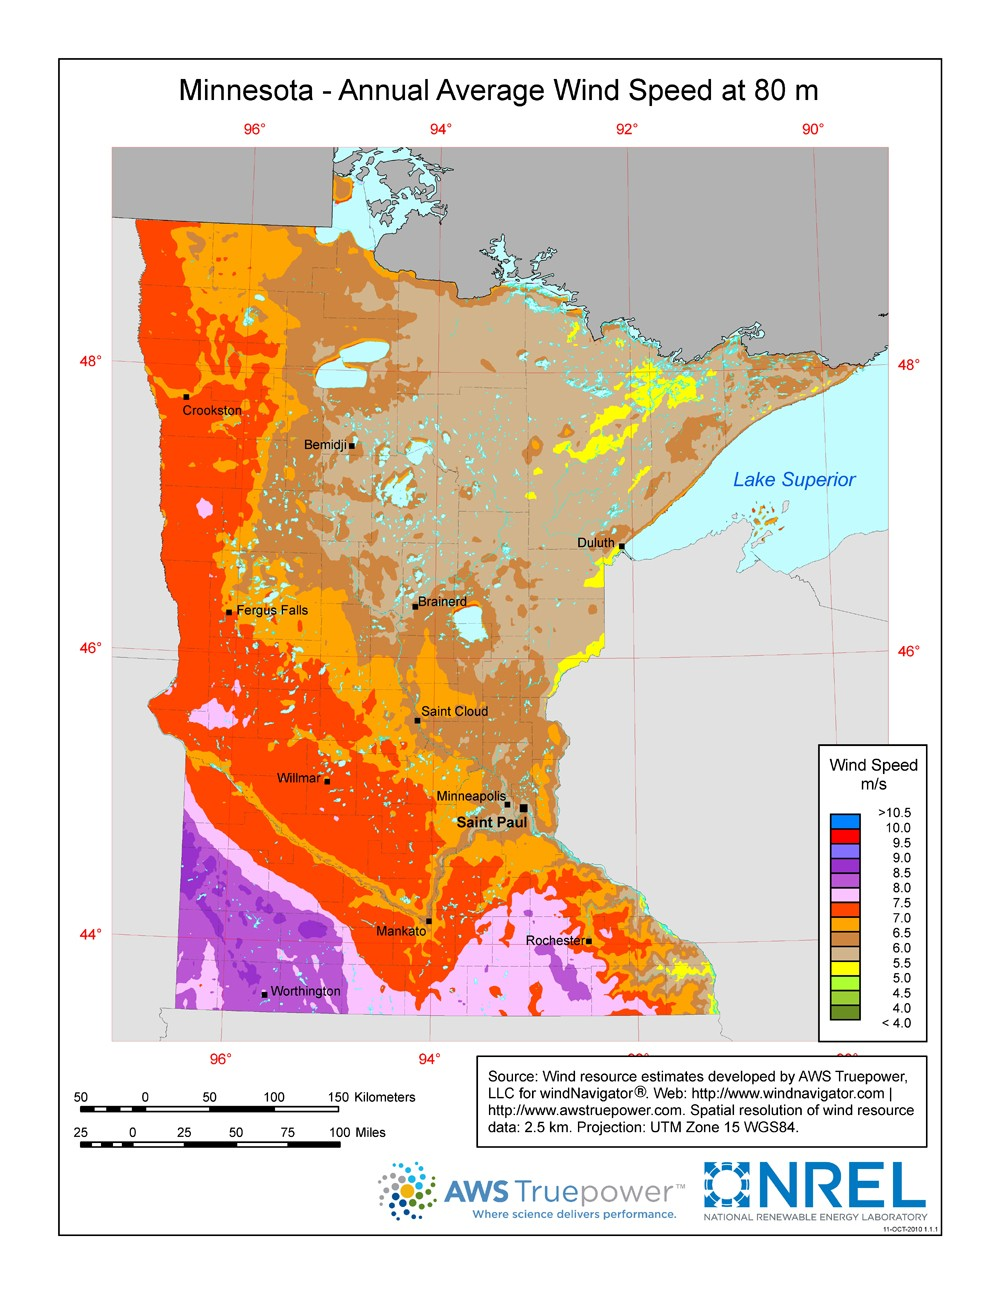 Minnesota wind resource map.